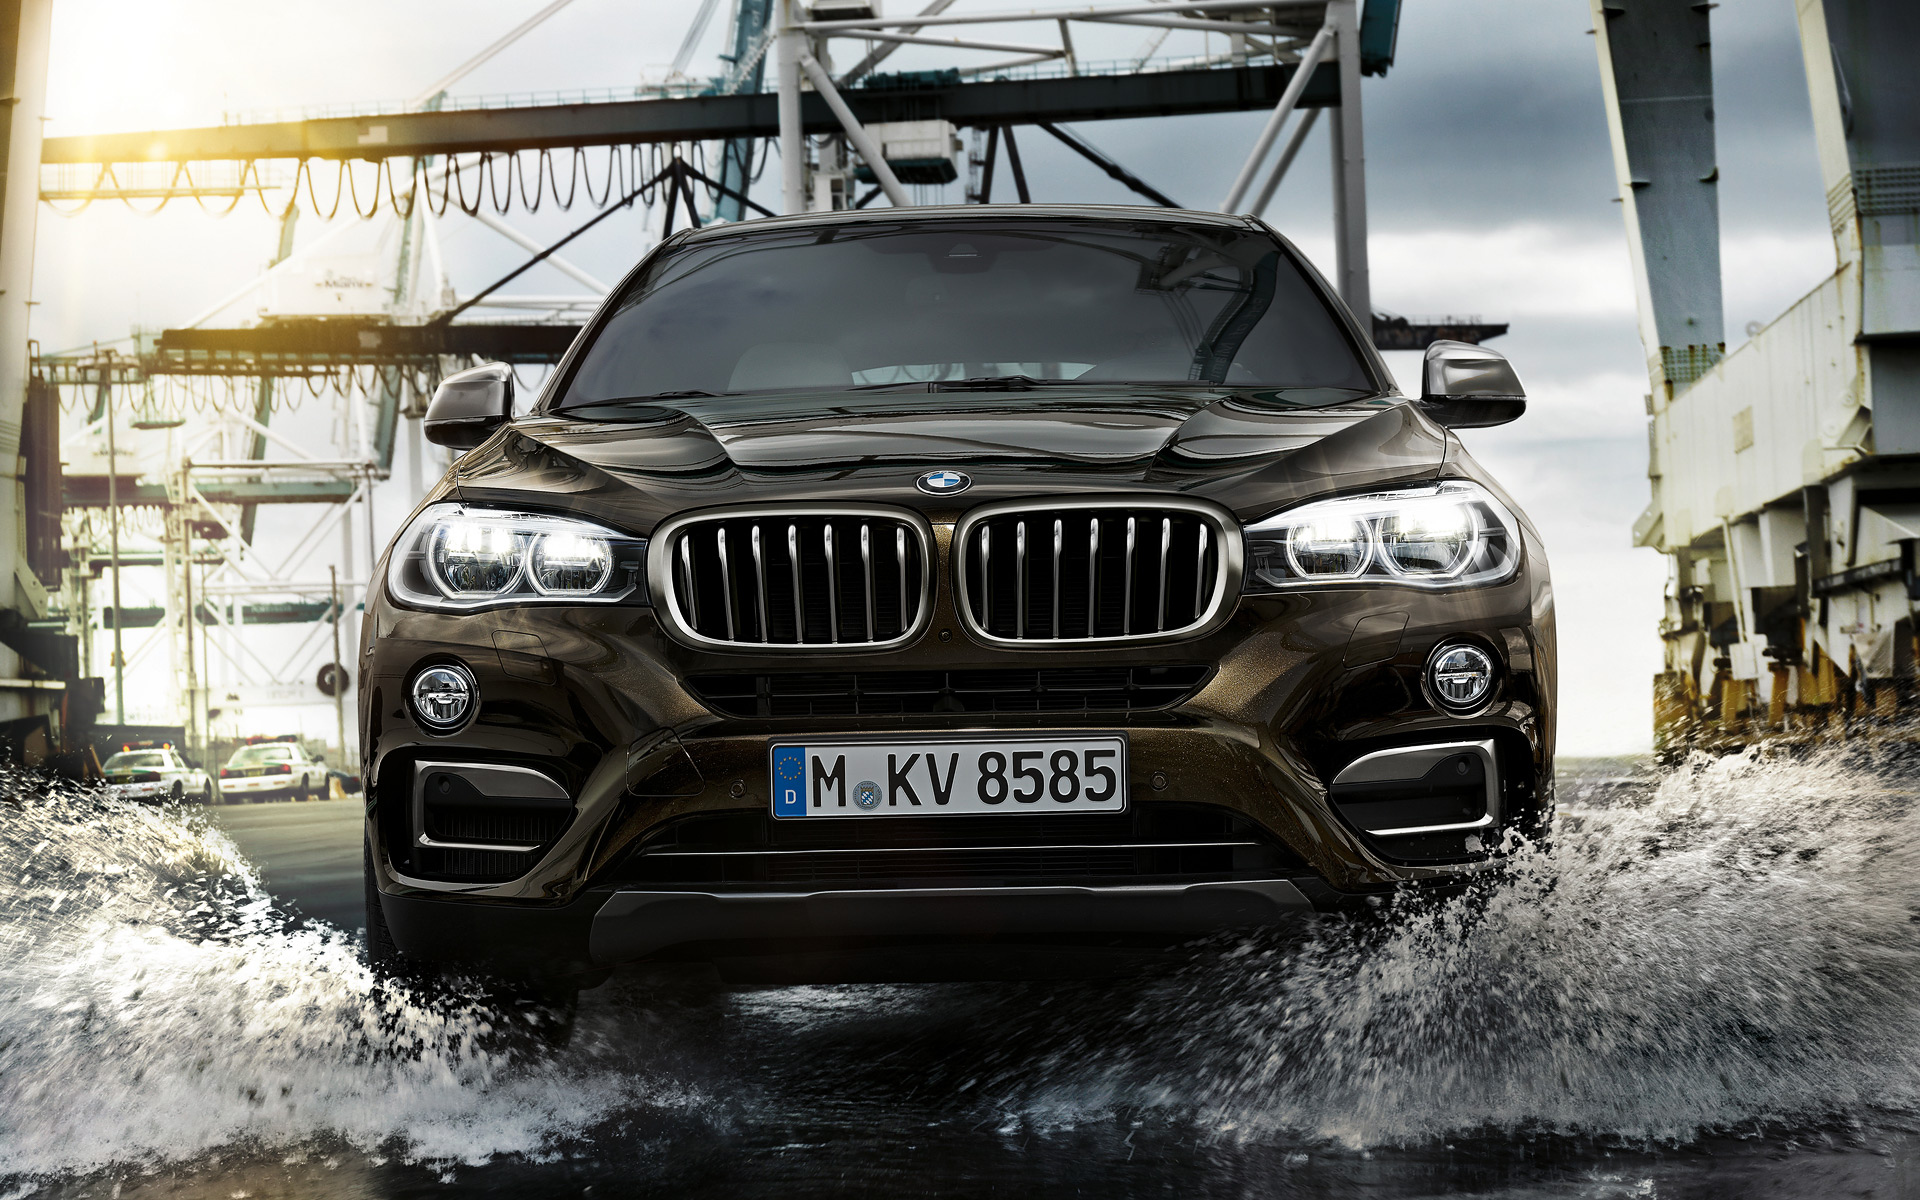 Bmw Key Evolution >> 2016 BMW X6 Wallpapers - autoevolution